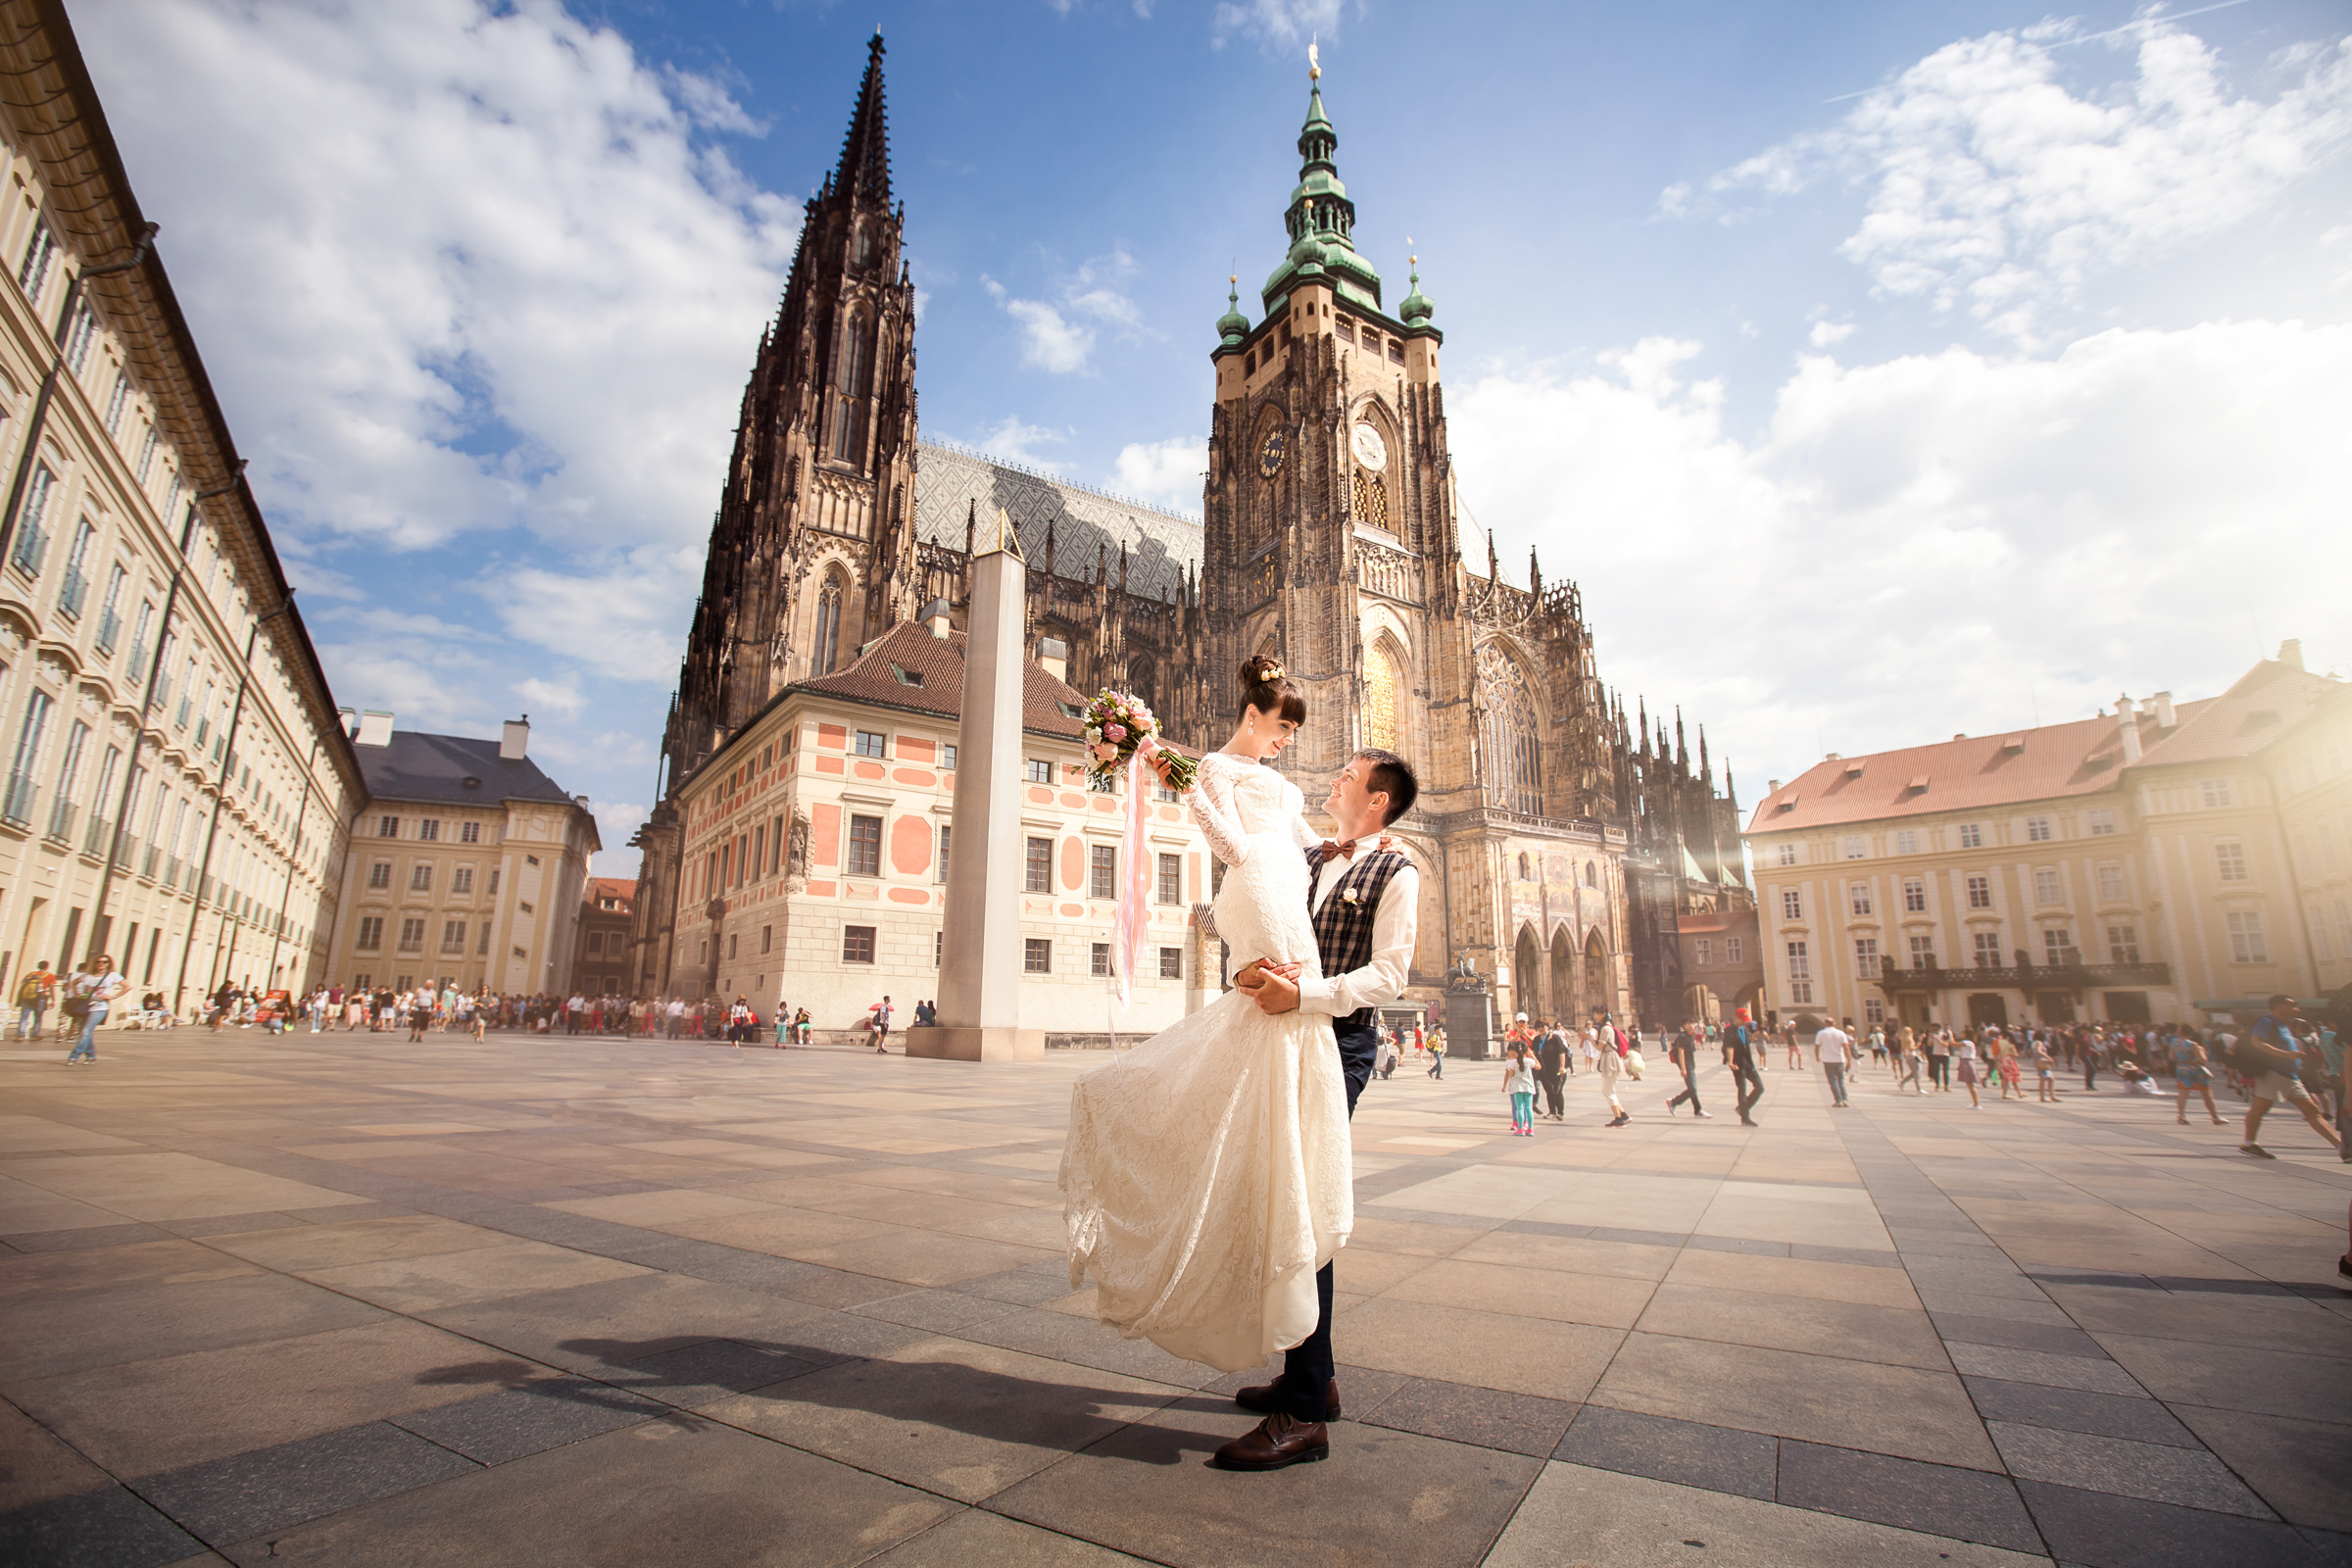 Early morning walk wedding photo session in Prague, Charles Bridge, Hradcany, smiles and feelings